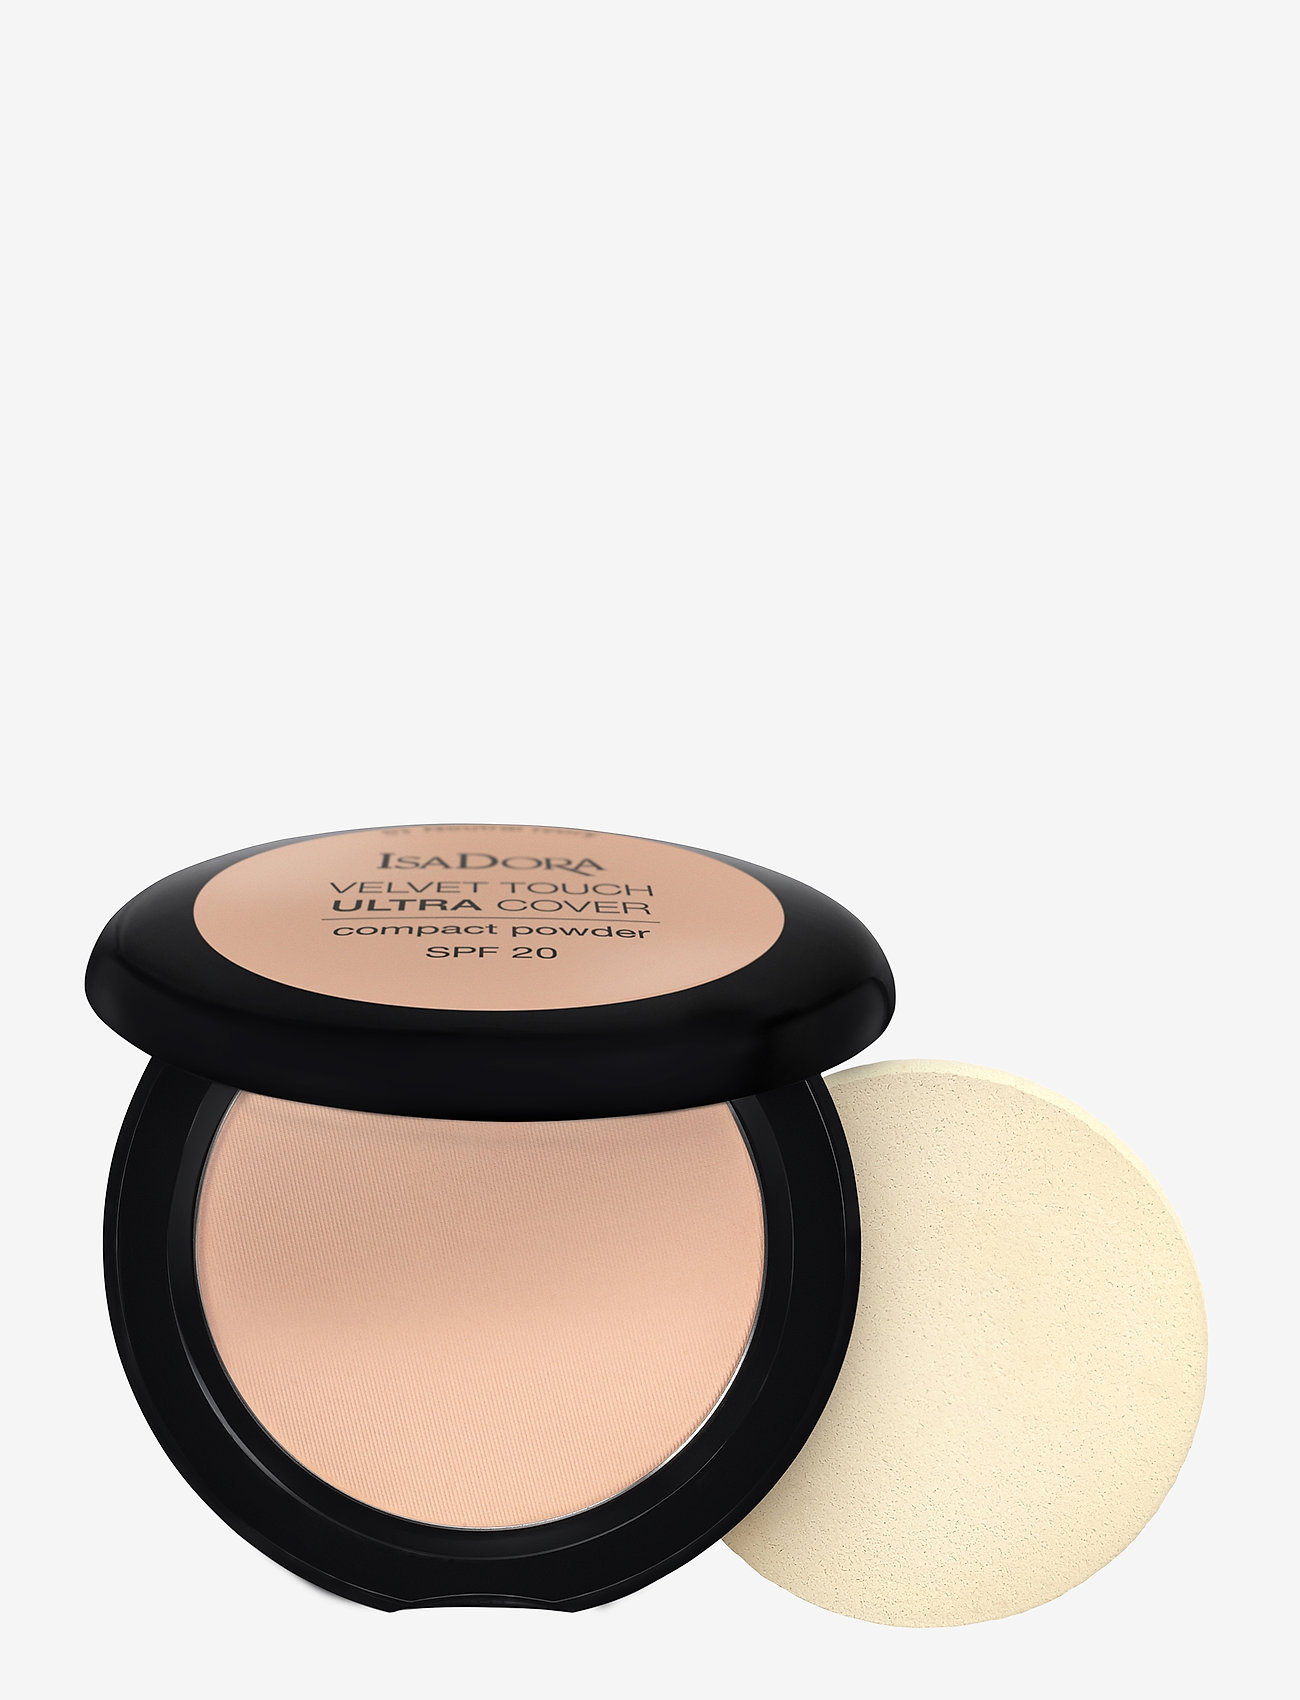 Isadora - VELVET TOUCH ULTRA COVER COMPACT POWDER SPF 20 - puder - cool sand - 0